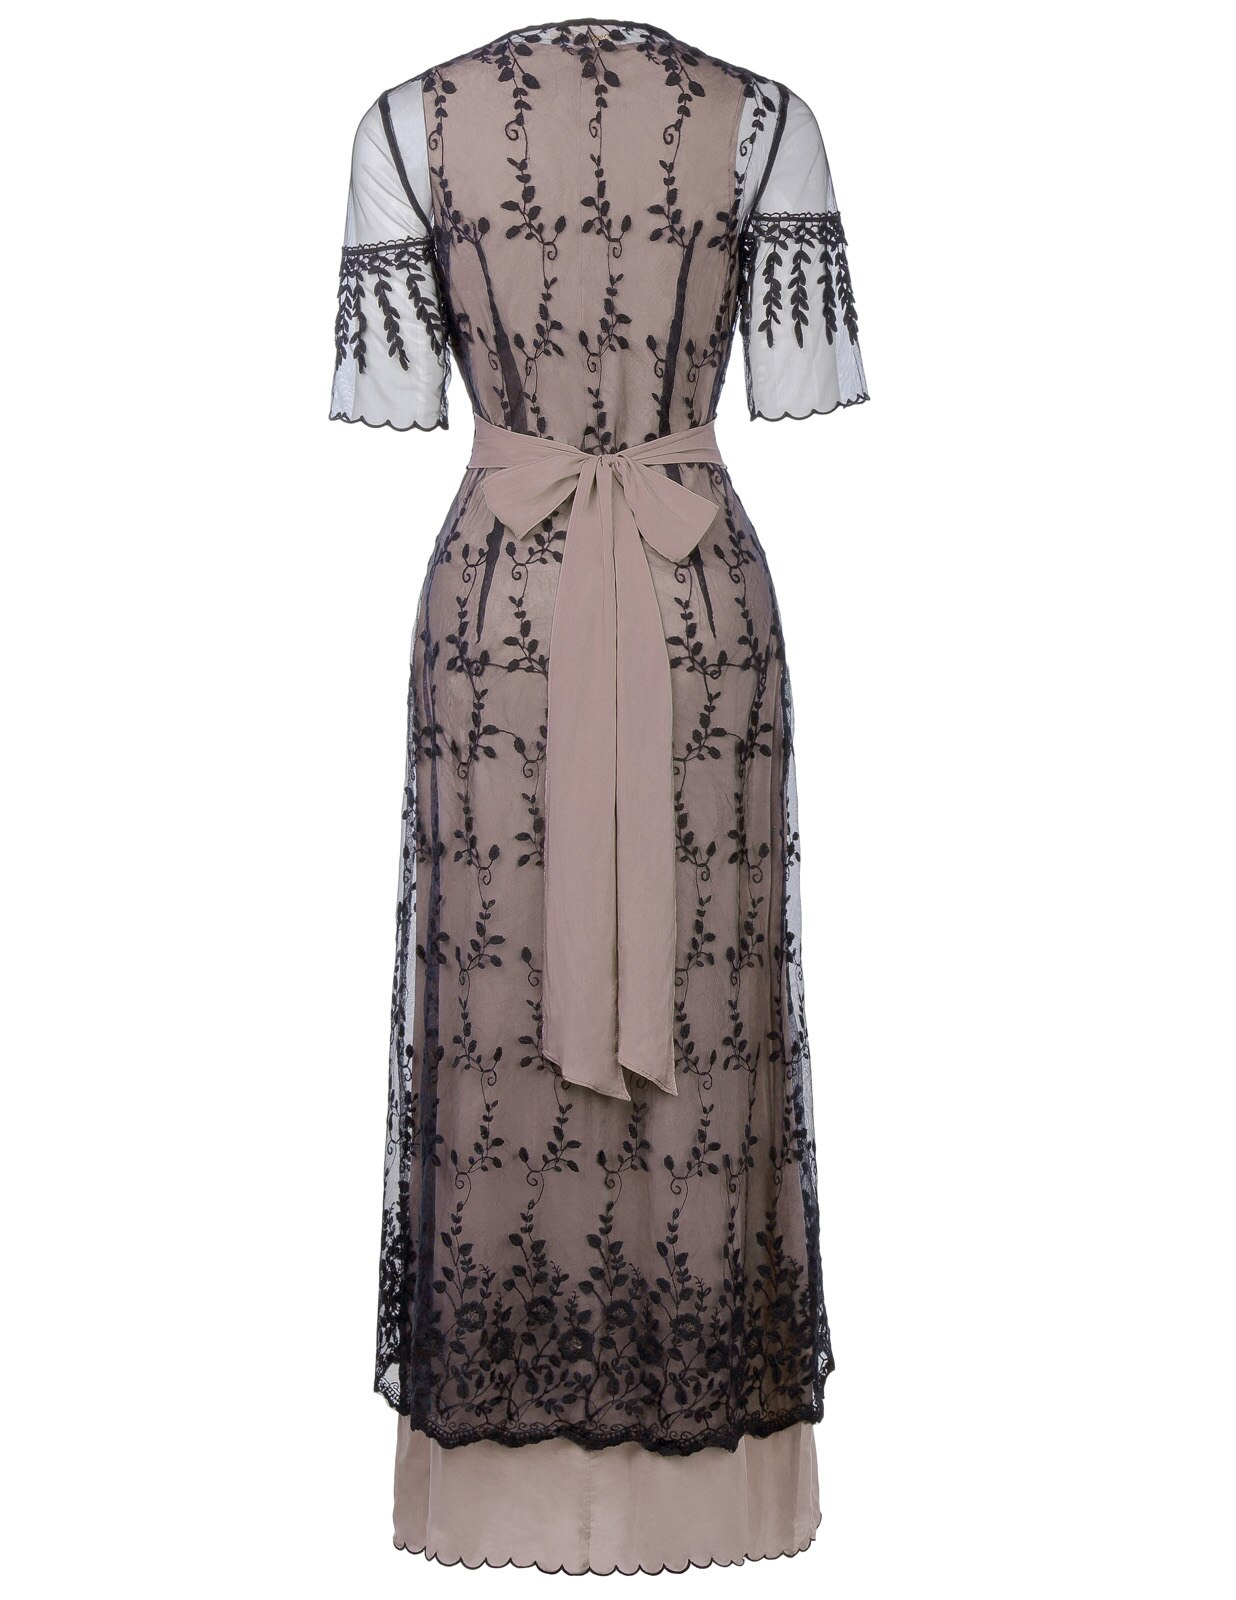 Lolita floral Embroidery Mesh ankle length ladies dress Sexy Women Retro Vintage Victorian Style Half Sleeve V-Neck Lace Dresses